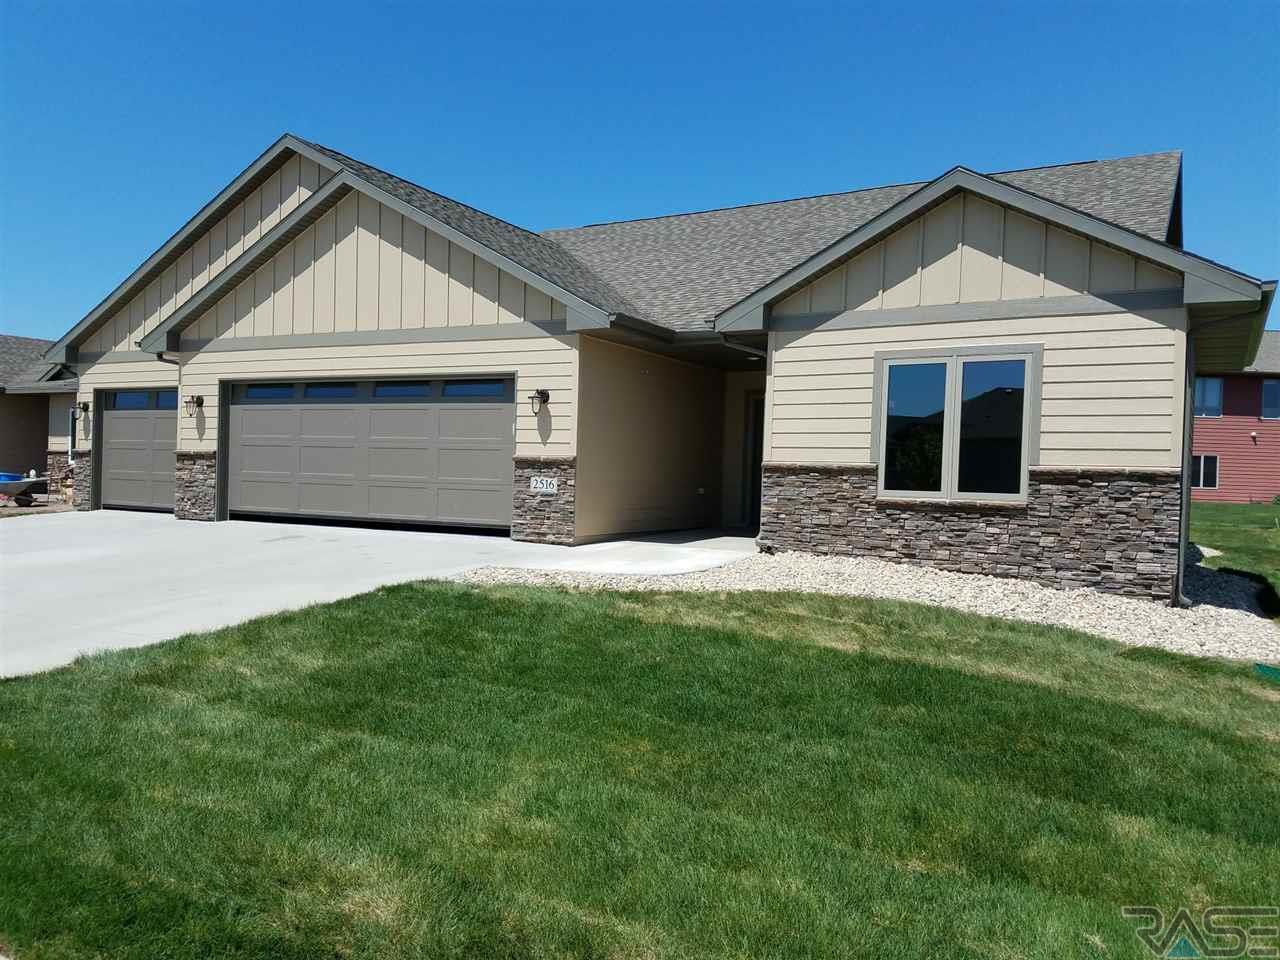 2516 E Tranquility Ave, Sioux Falls, SD 57108